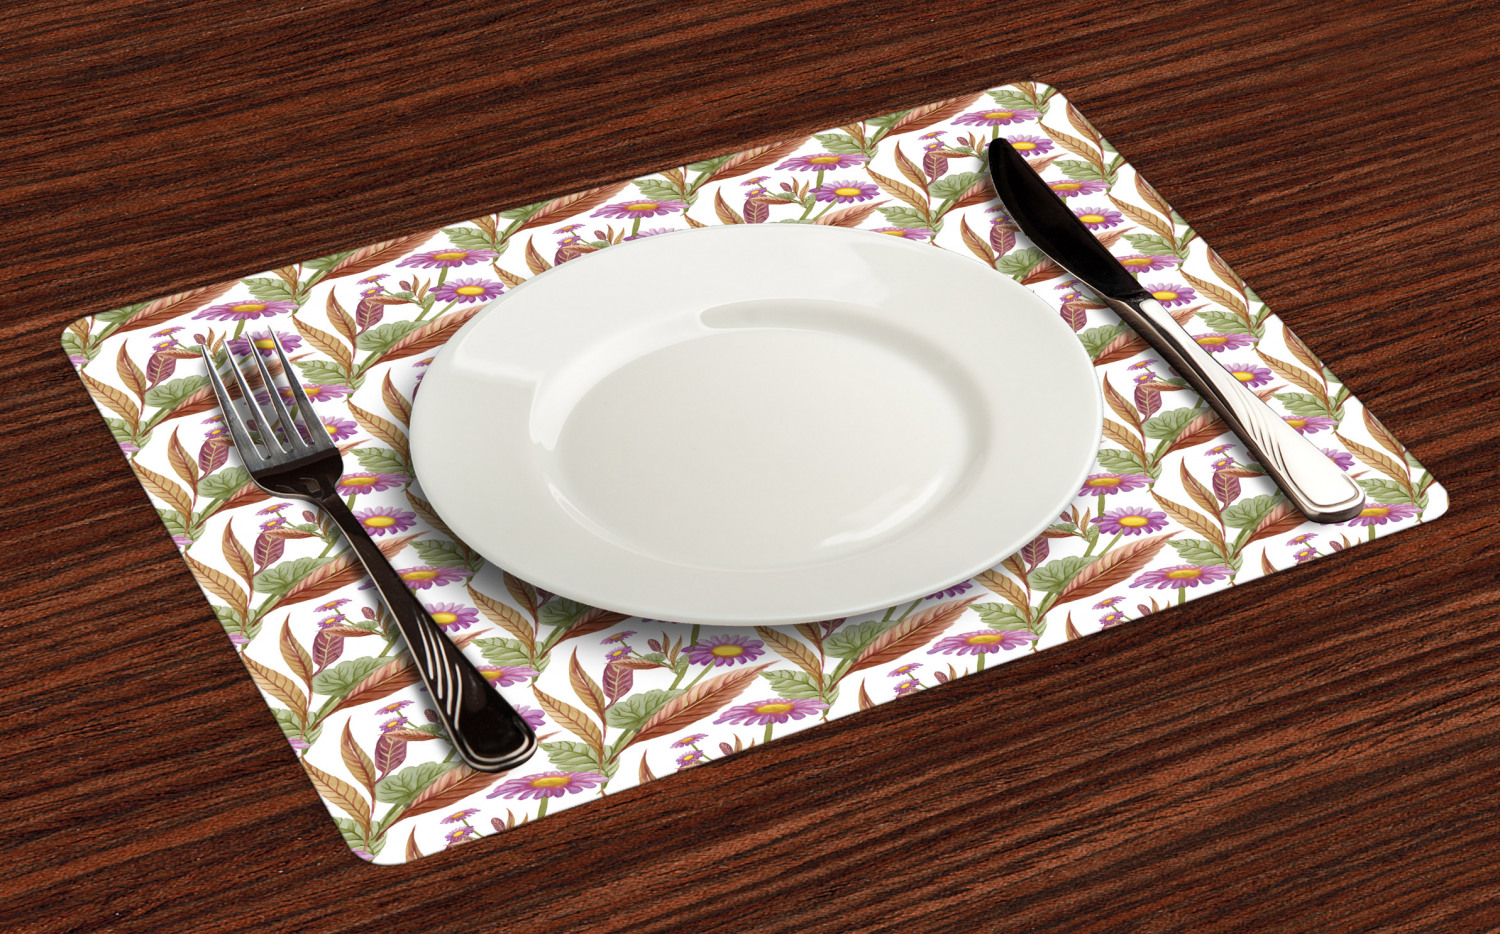 Ambesonne-Flower-Pattern-Placemat-Set-of-4-Fabric-Place-Mats-for-Table-Decor thumbnail 185